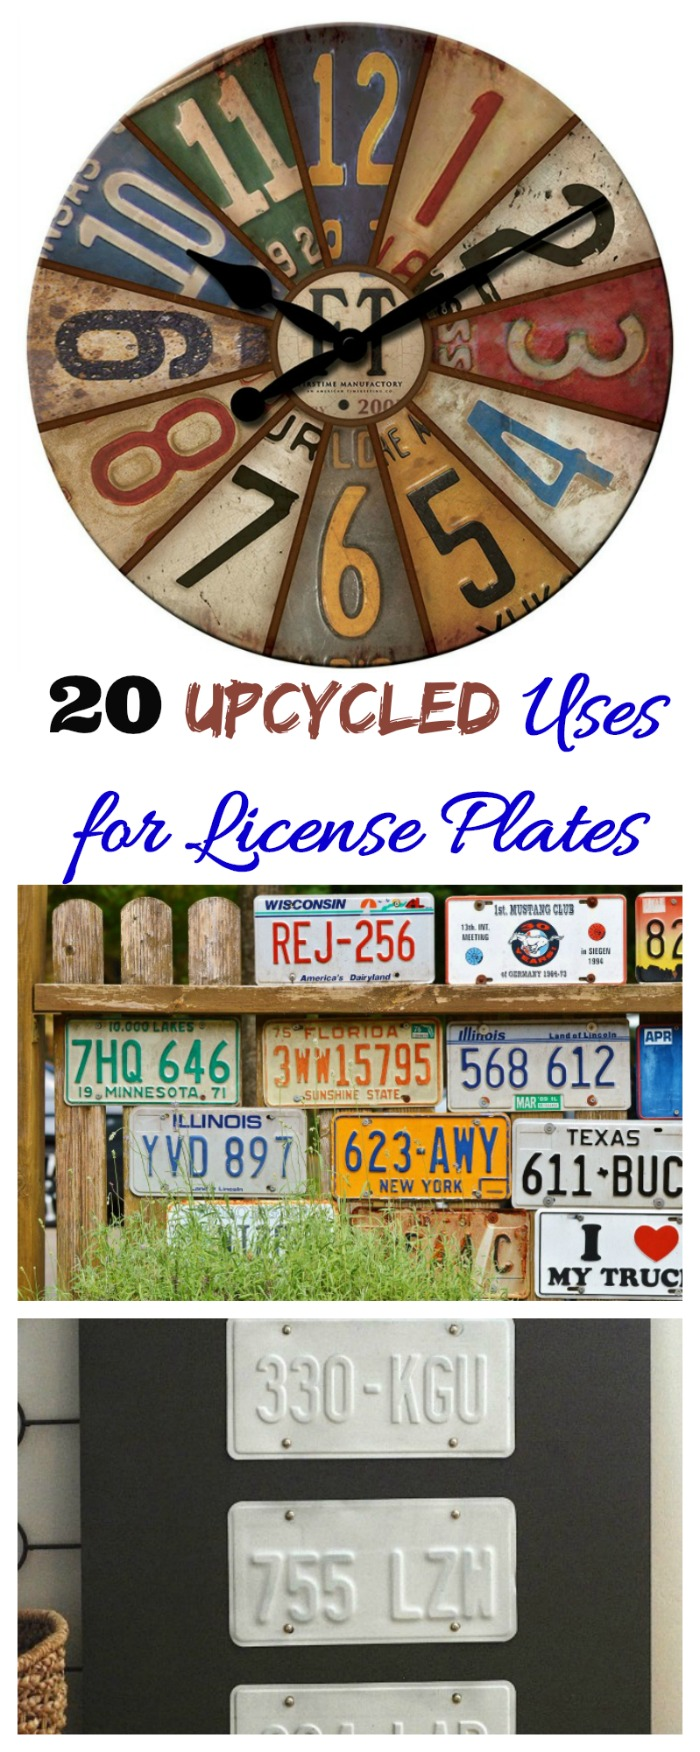 These 20 upcycled Uses for License Plates show that number plates are not just for cars. #licenseplates #numberplates